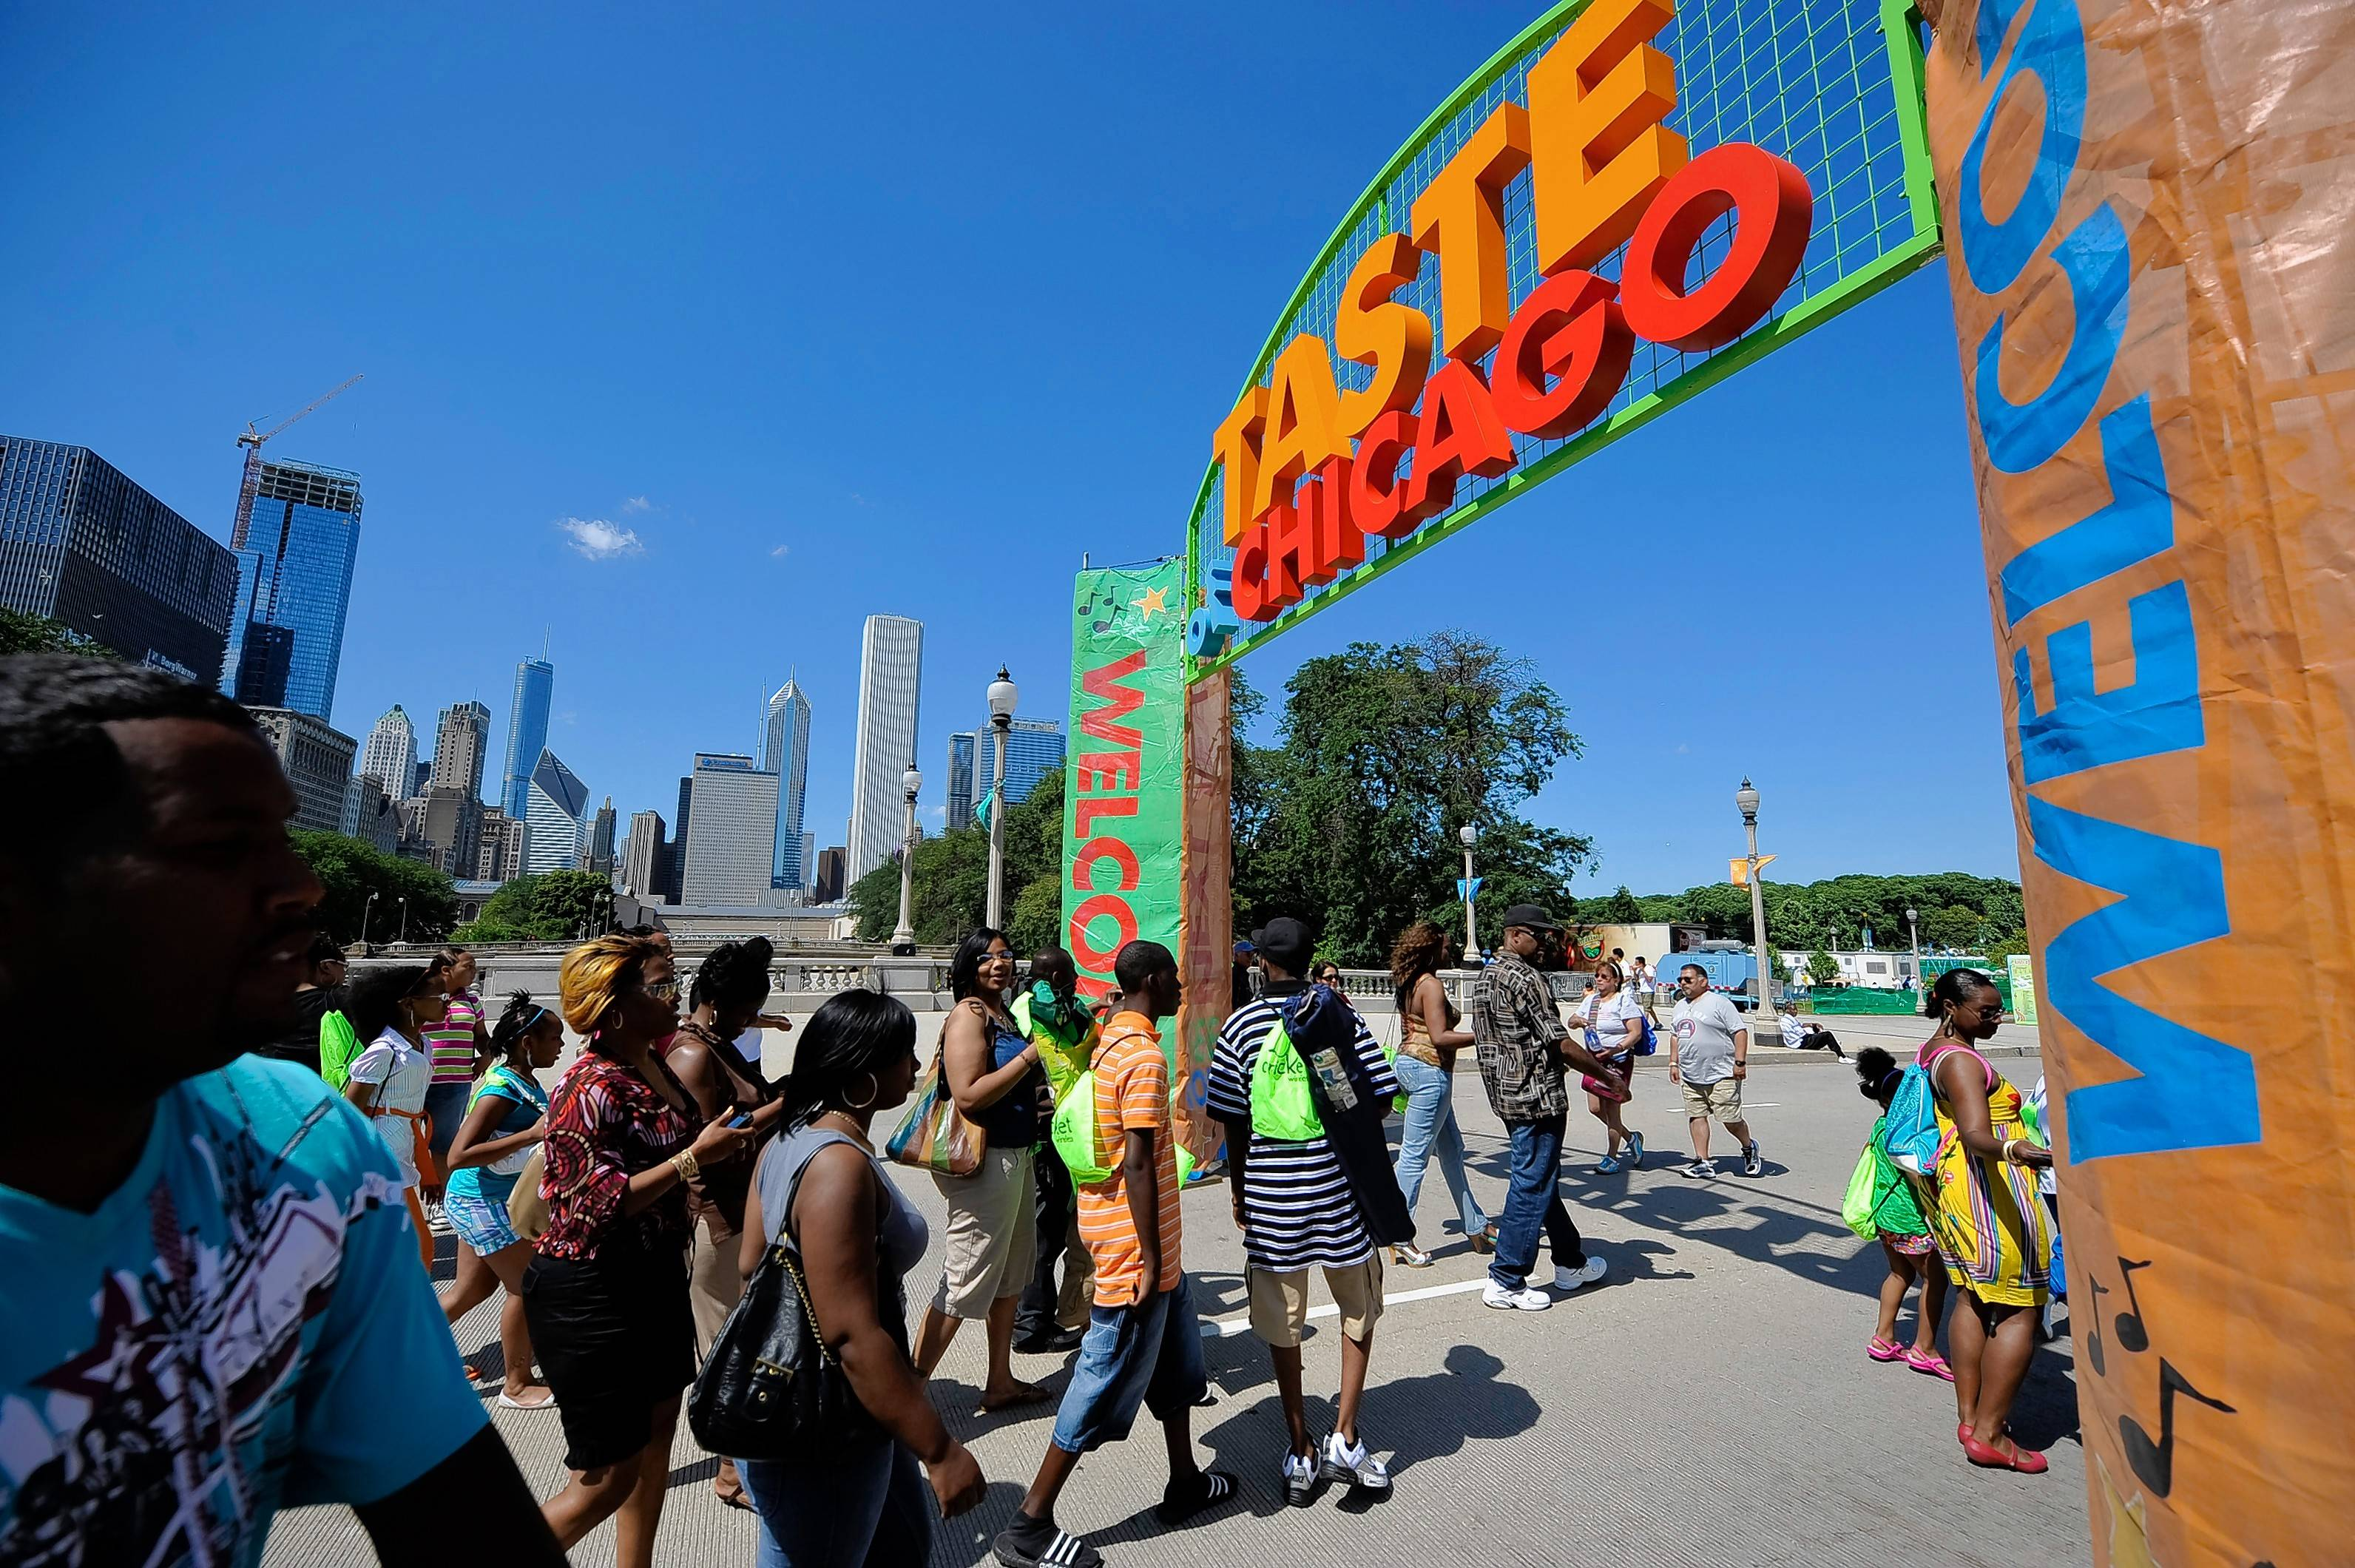 Taste of Chicago draws big crowds for food and music.